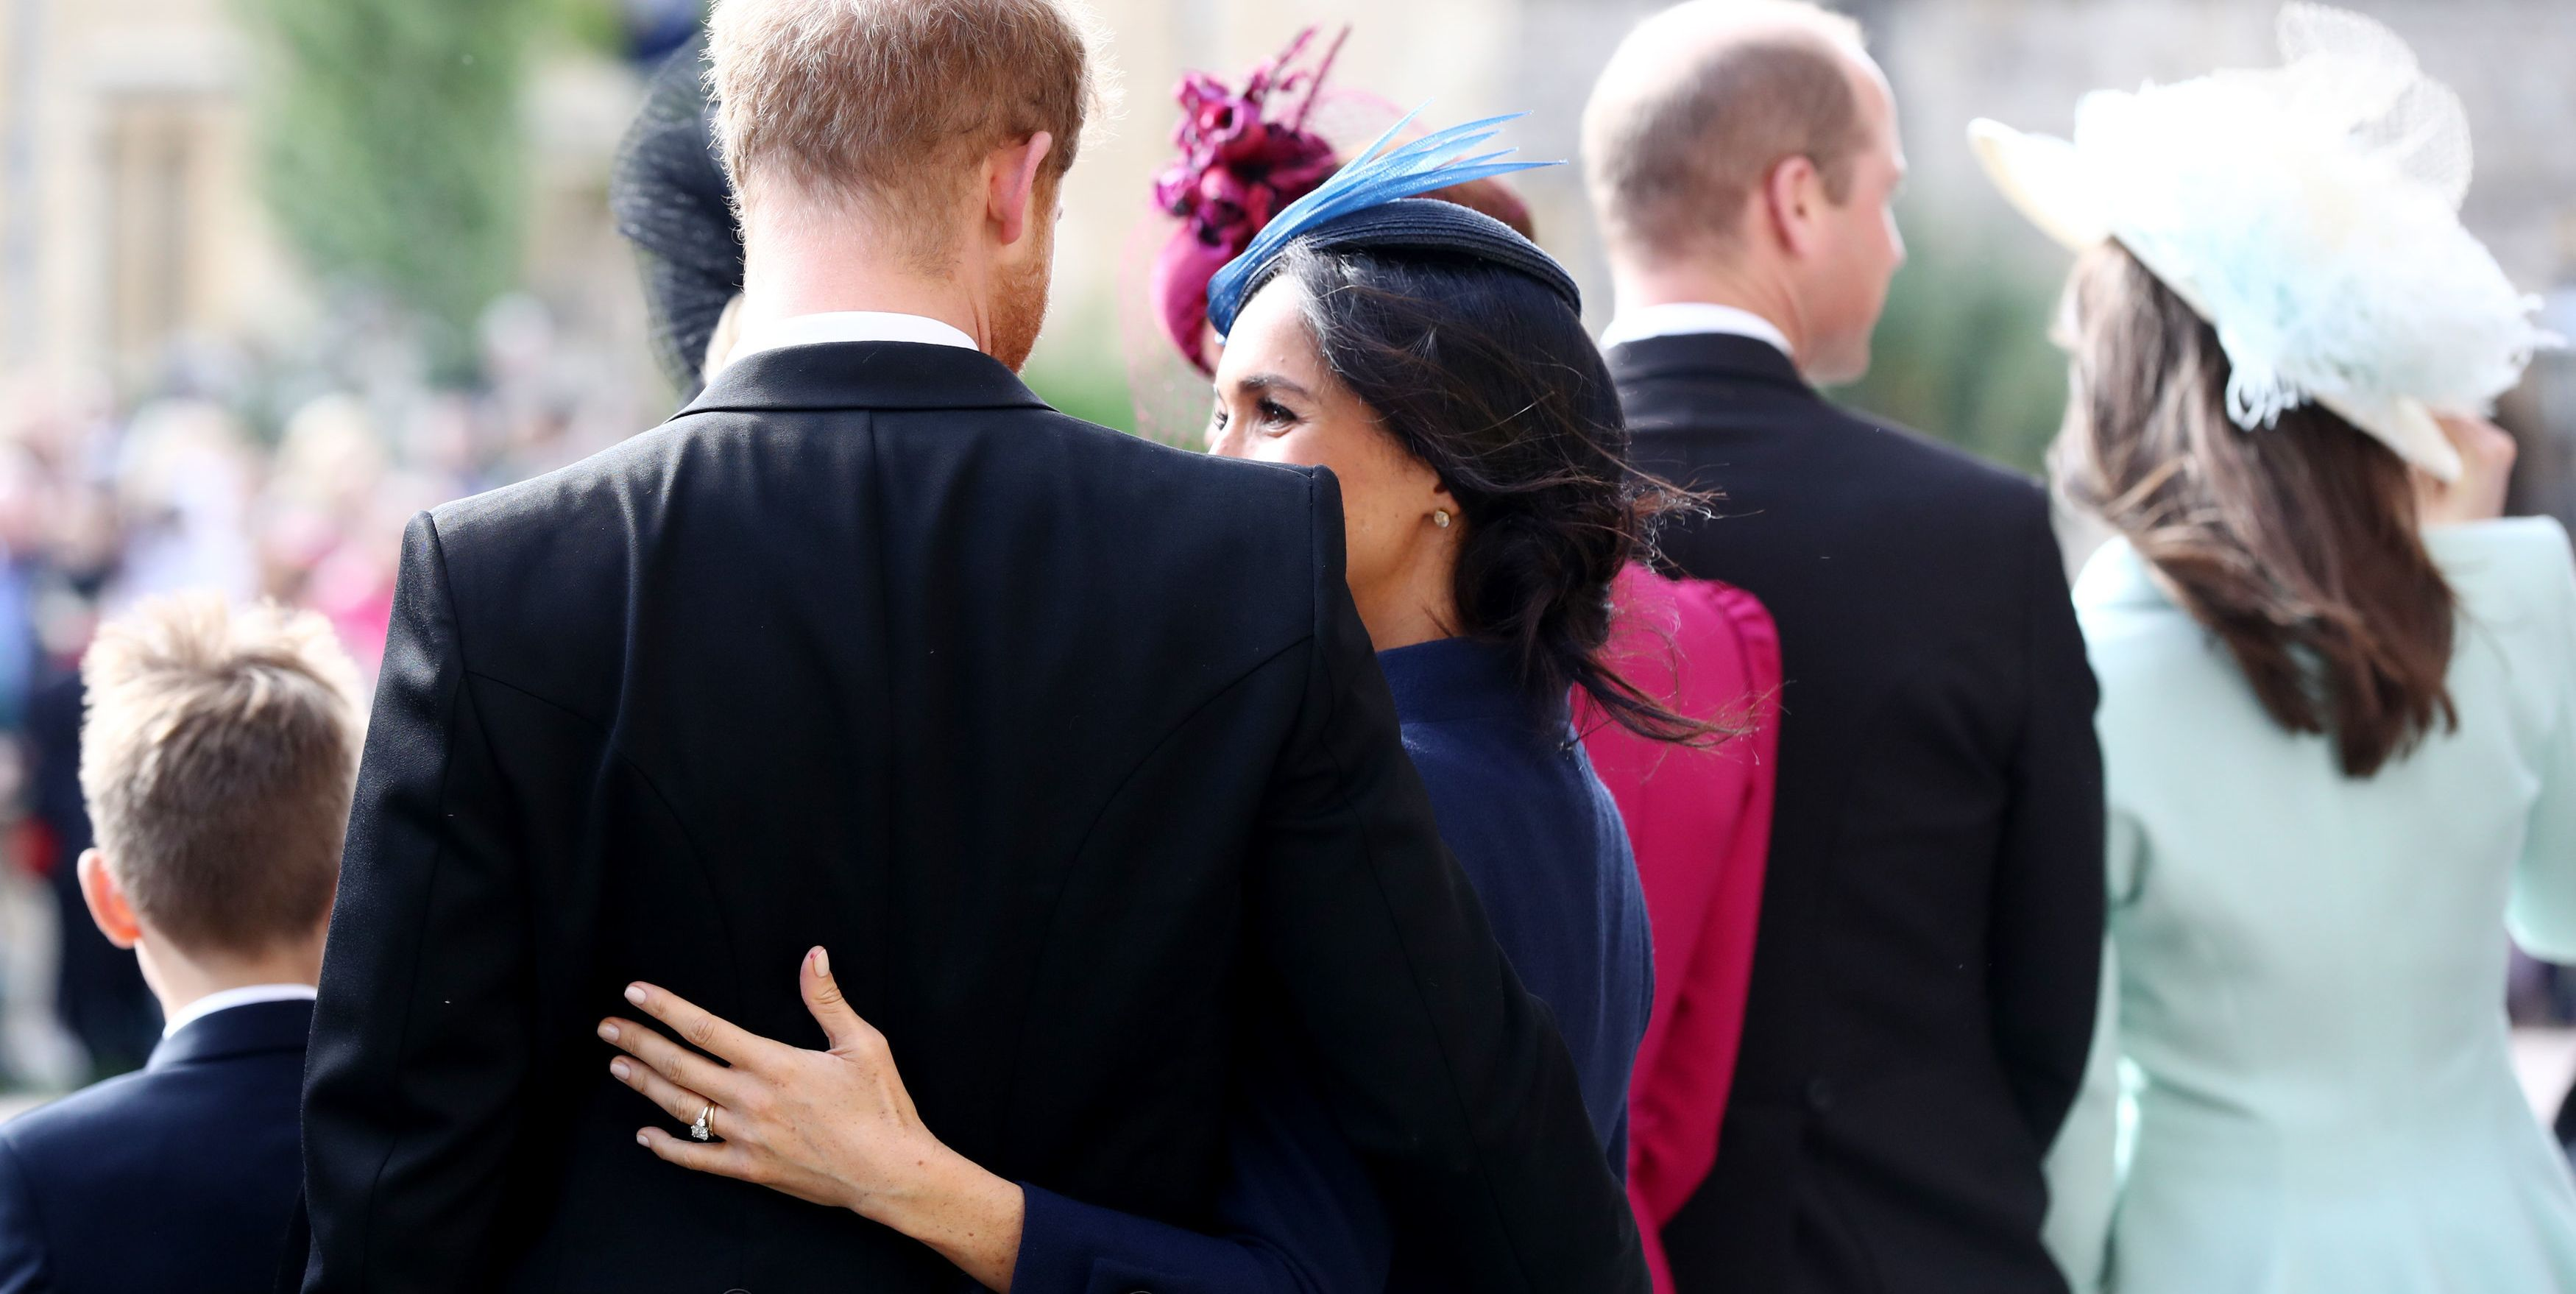 Meghan Markle and Prince Harry Showed a Lot of PDA Leaving Princess Eugenie's Royal Wedding